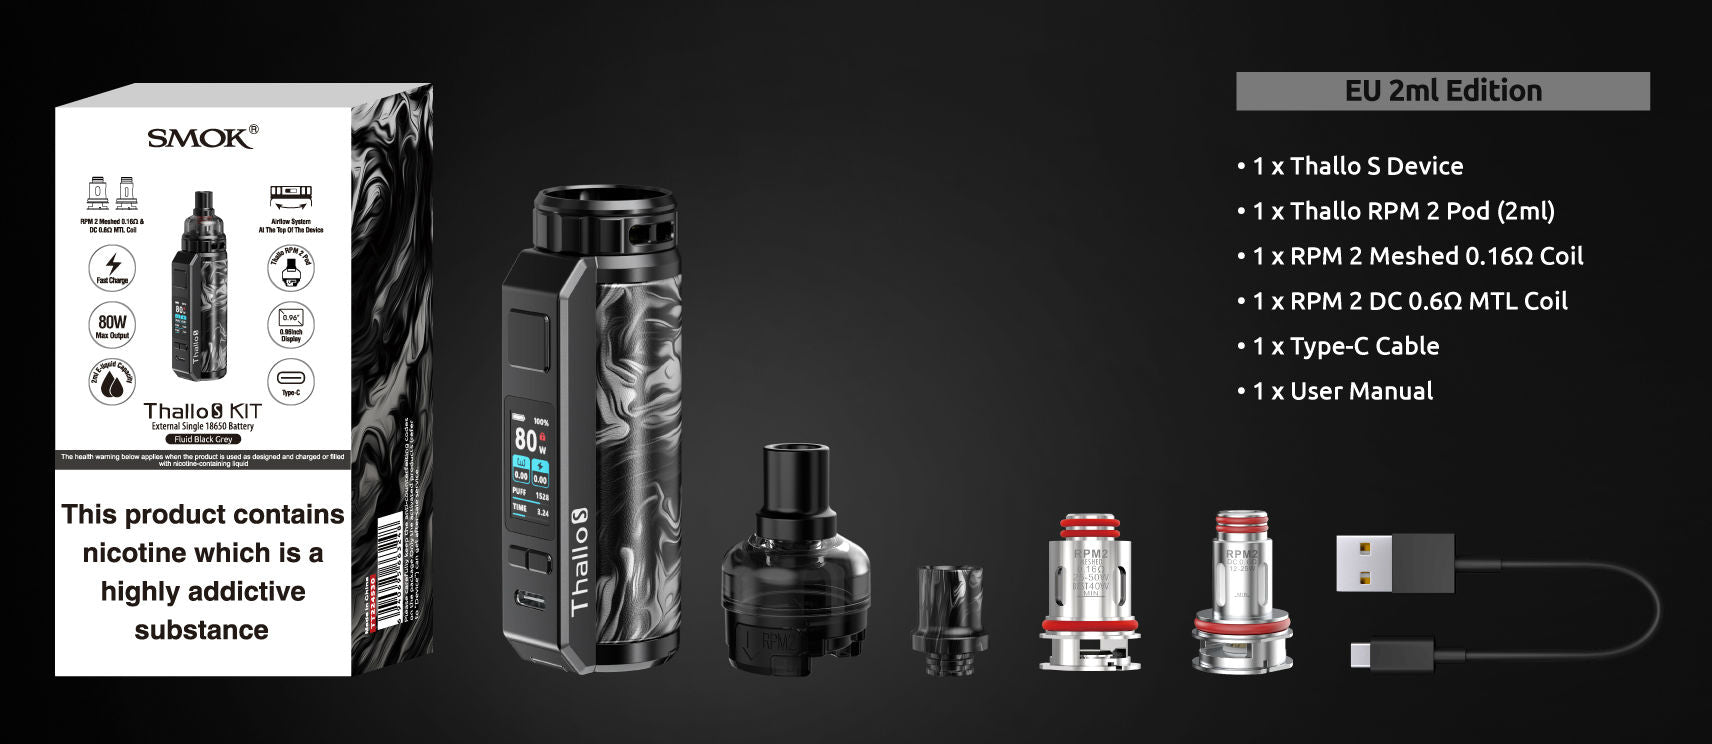 The kit includes a mod, pod, two coils and usb-c lead